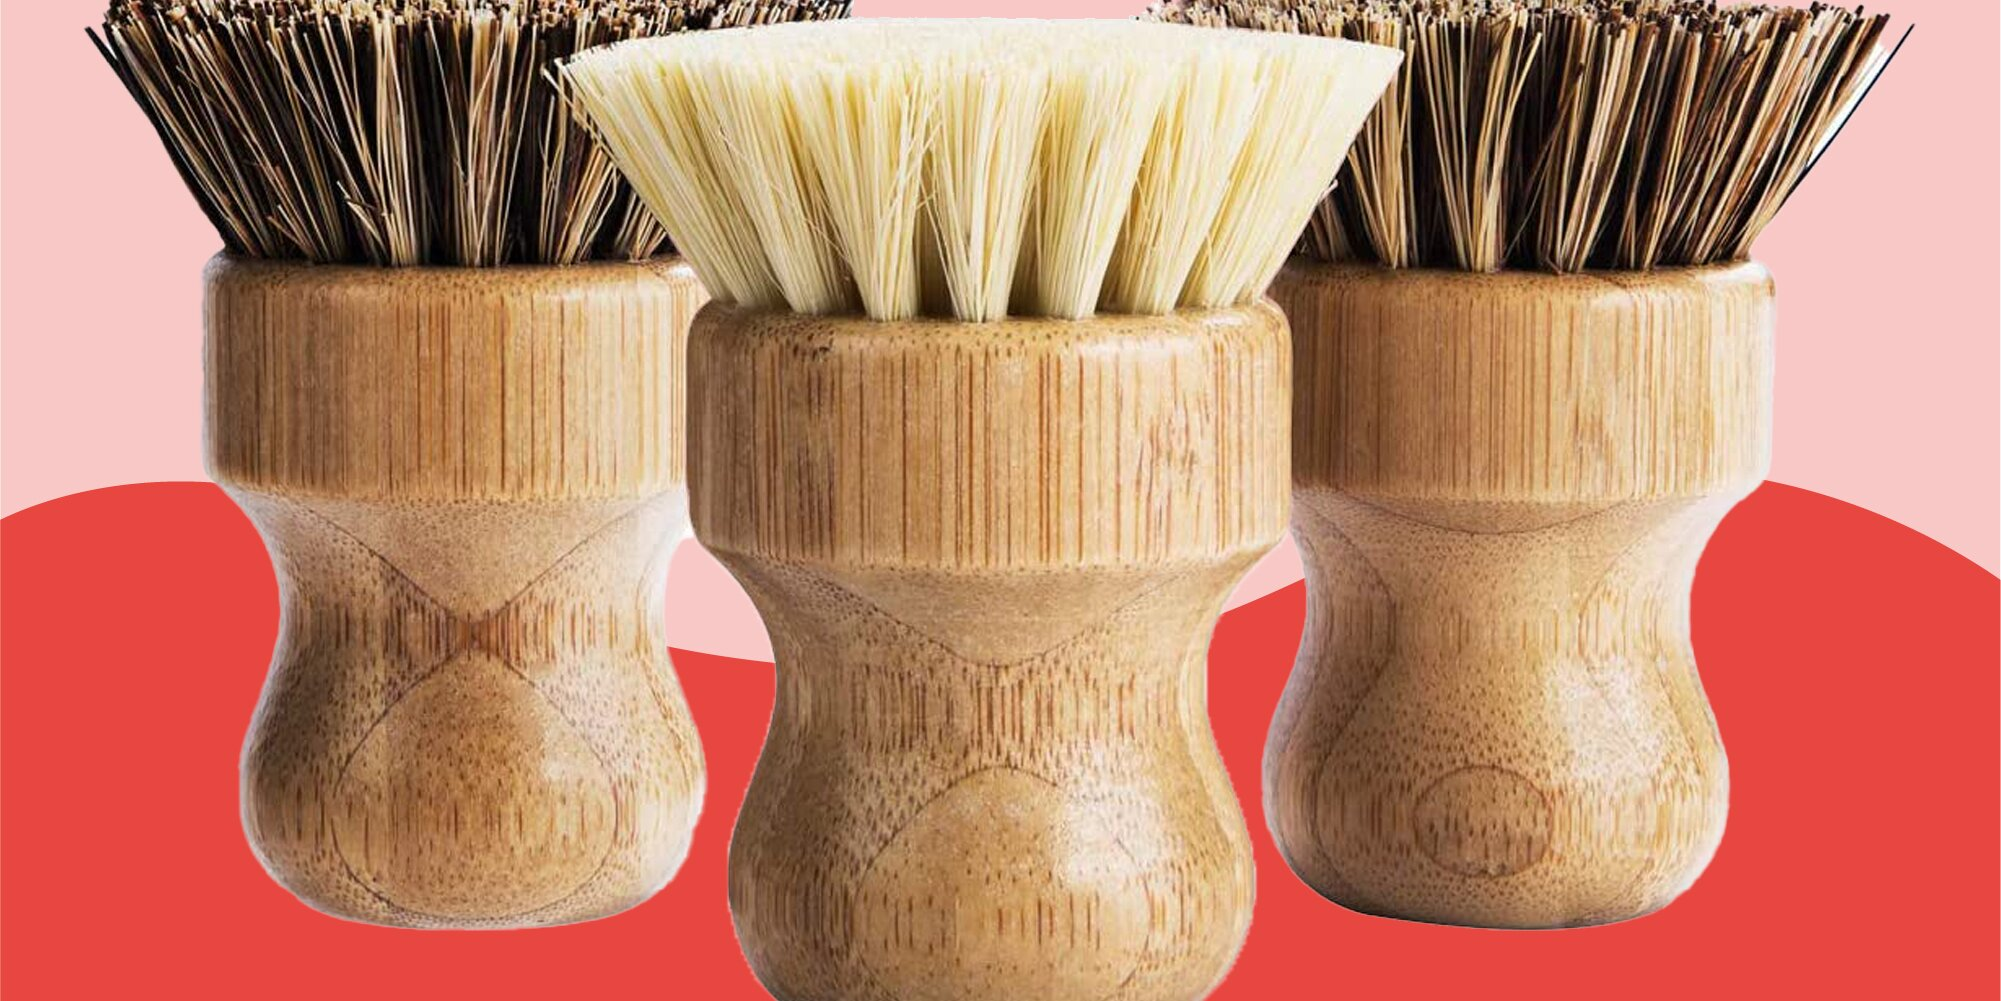 These Scrub Brushes Can Tackle Anything Stuck on Your Pots and Pans—and Look Great While Doing It